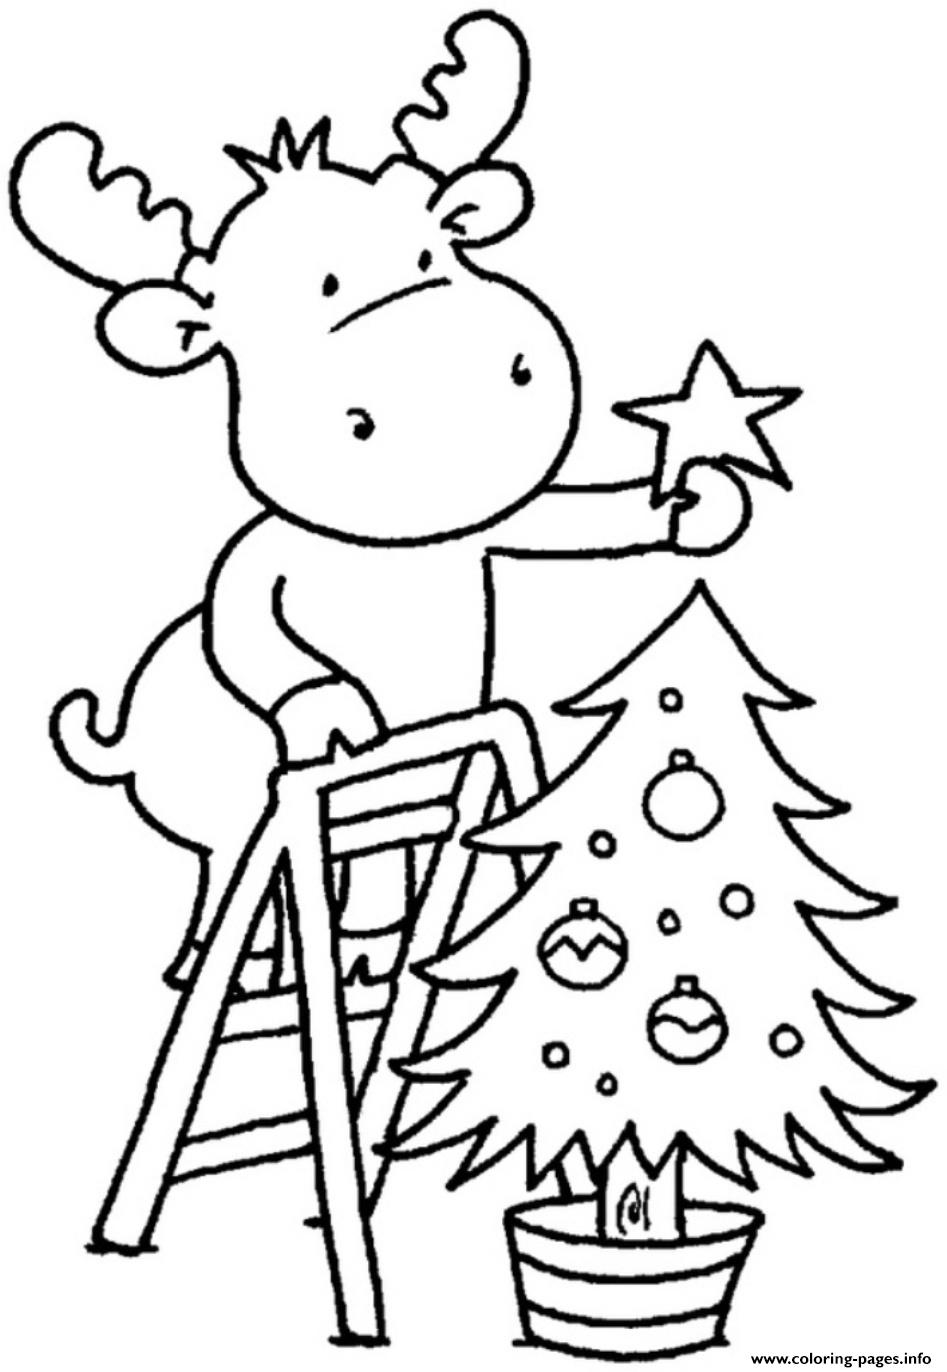 Christmas Tree For Children Coloring Pages Printable